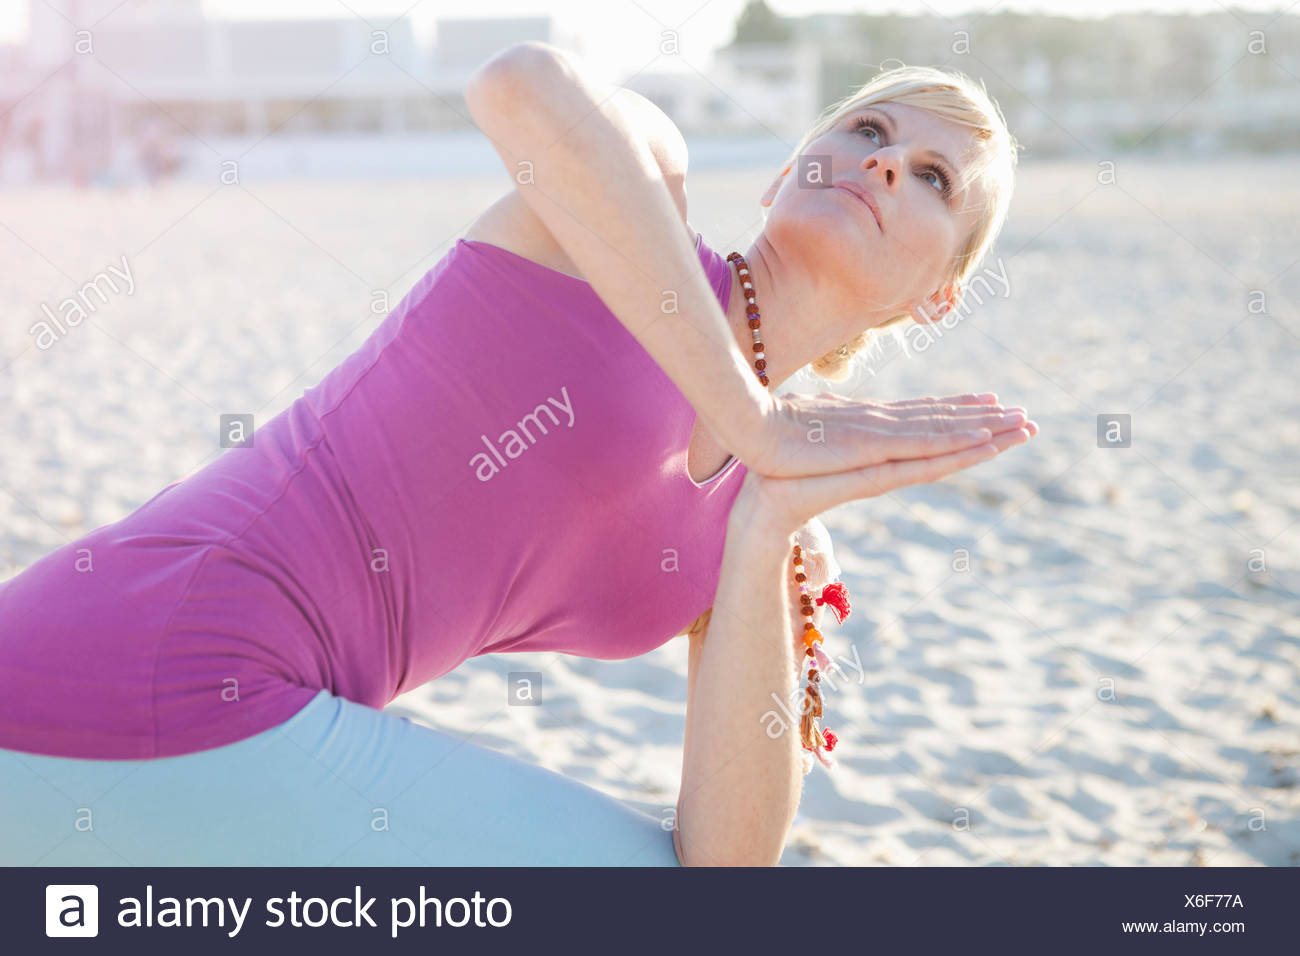 Woman in yoga prayer pose on the beach - Stock Image